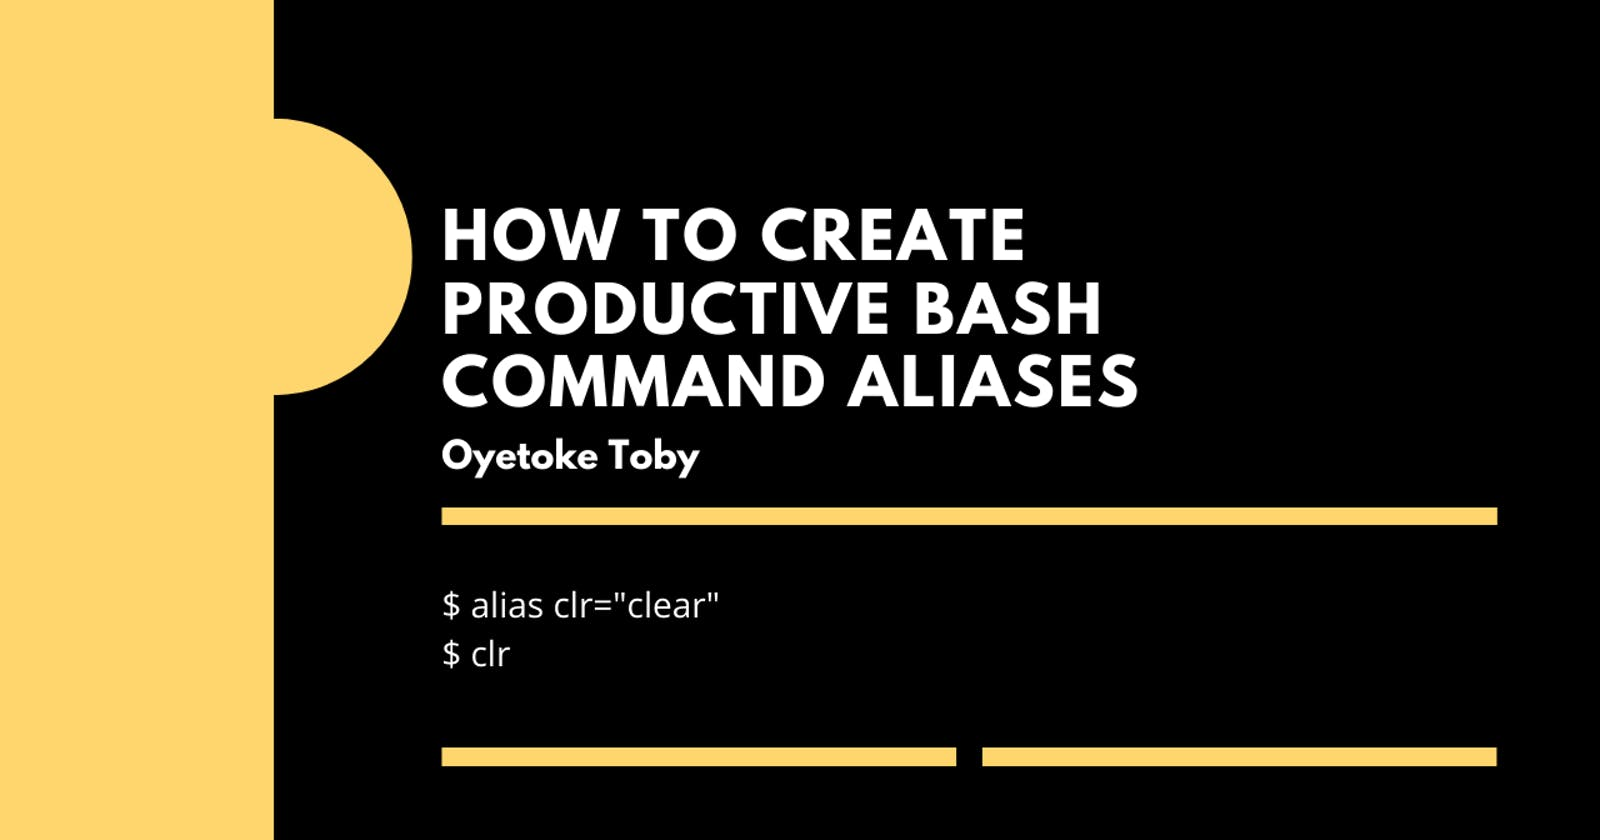 How to Create Productive Bash Command Aliases